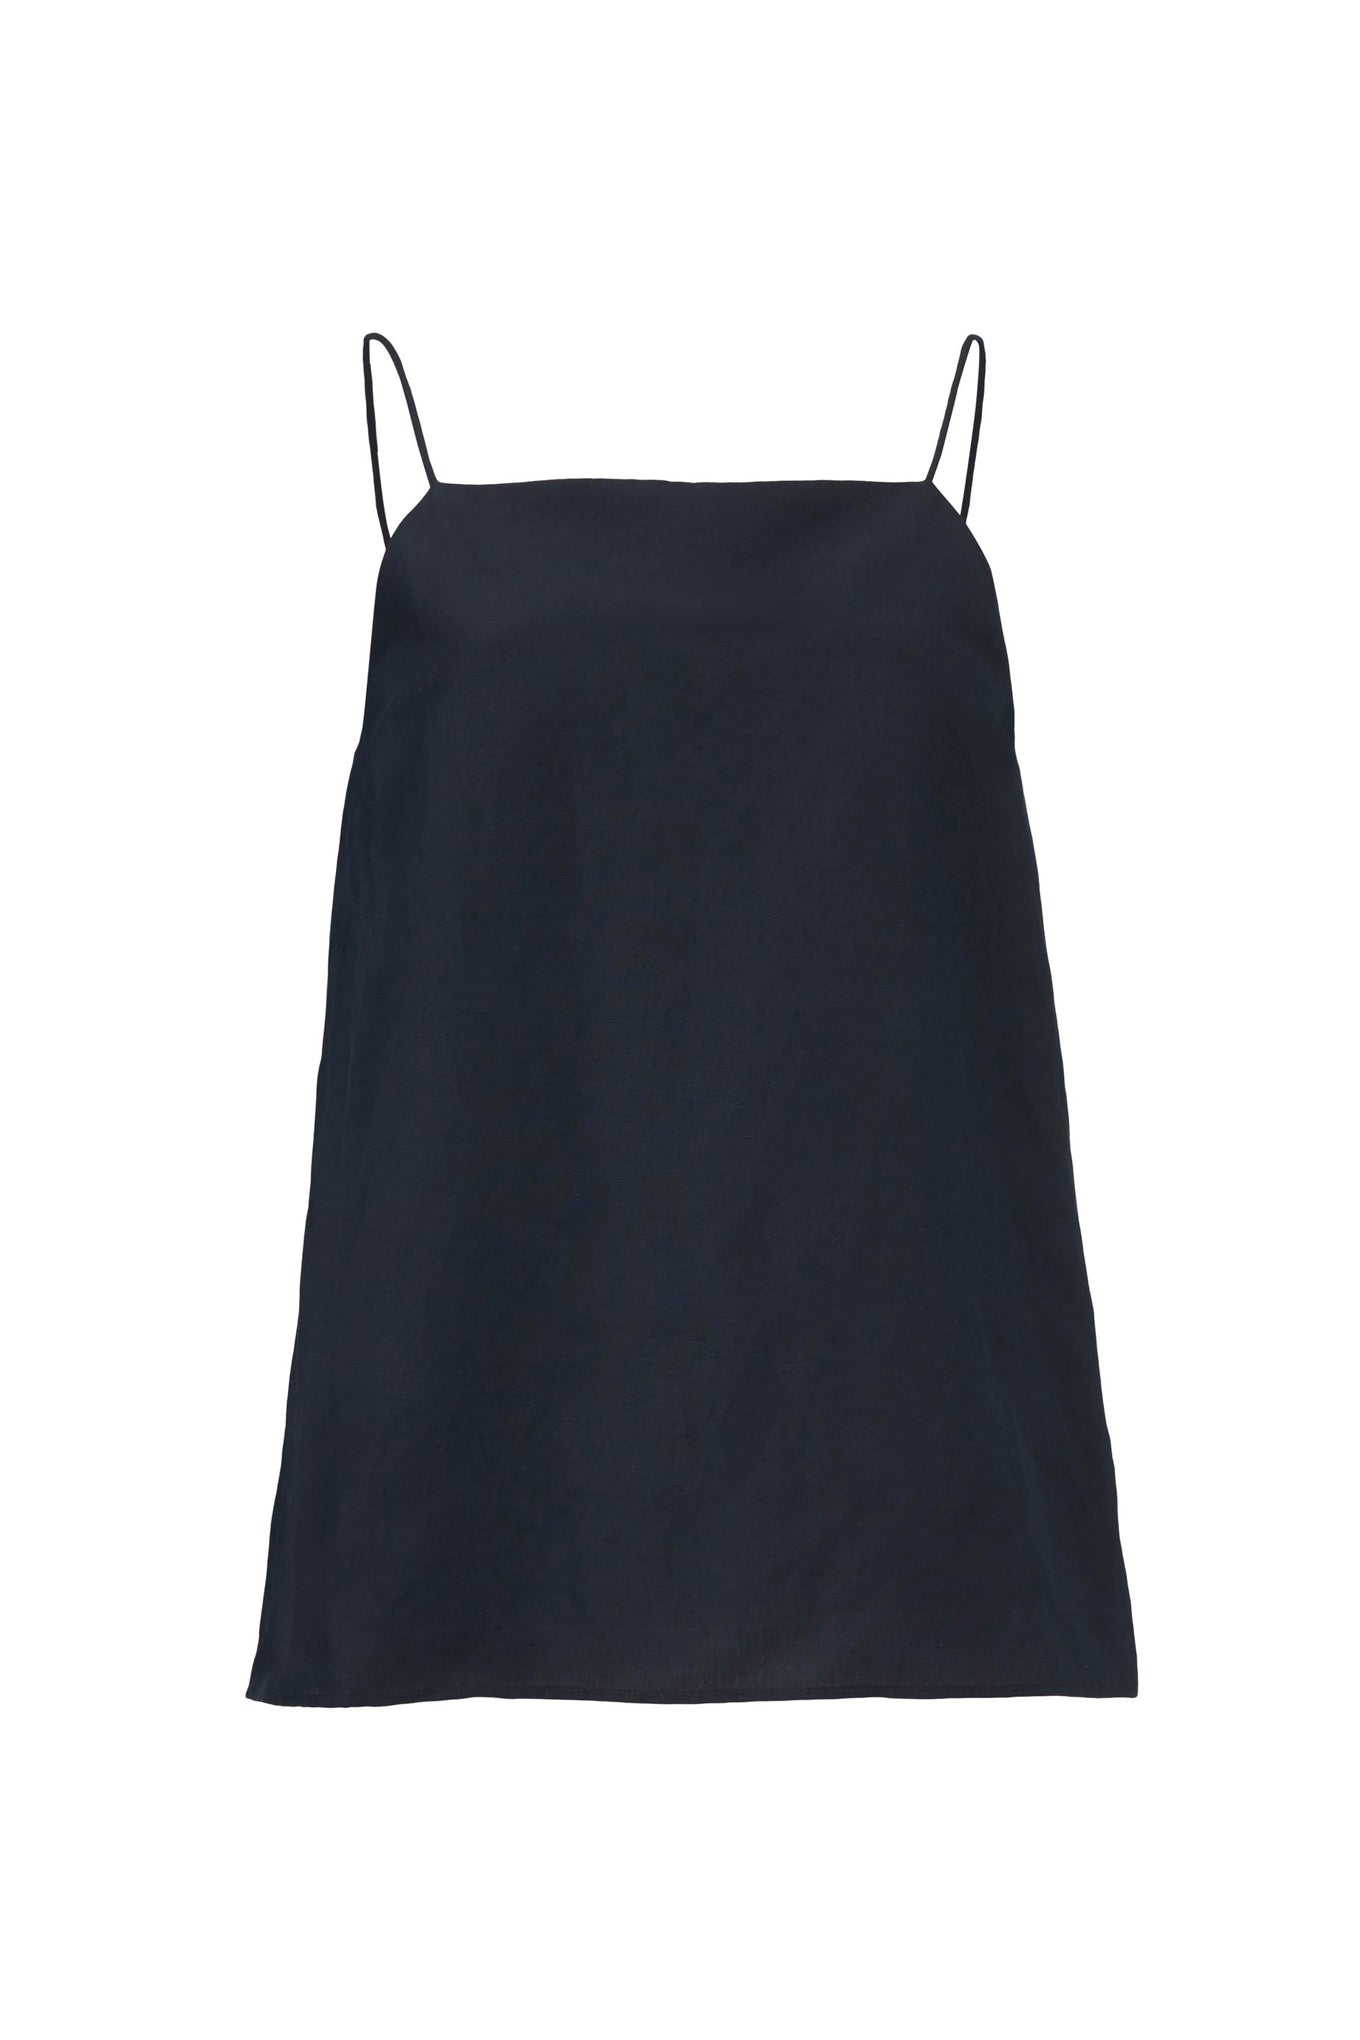 Lexie Top - Black - Silk/Linen